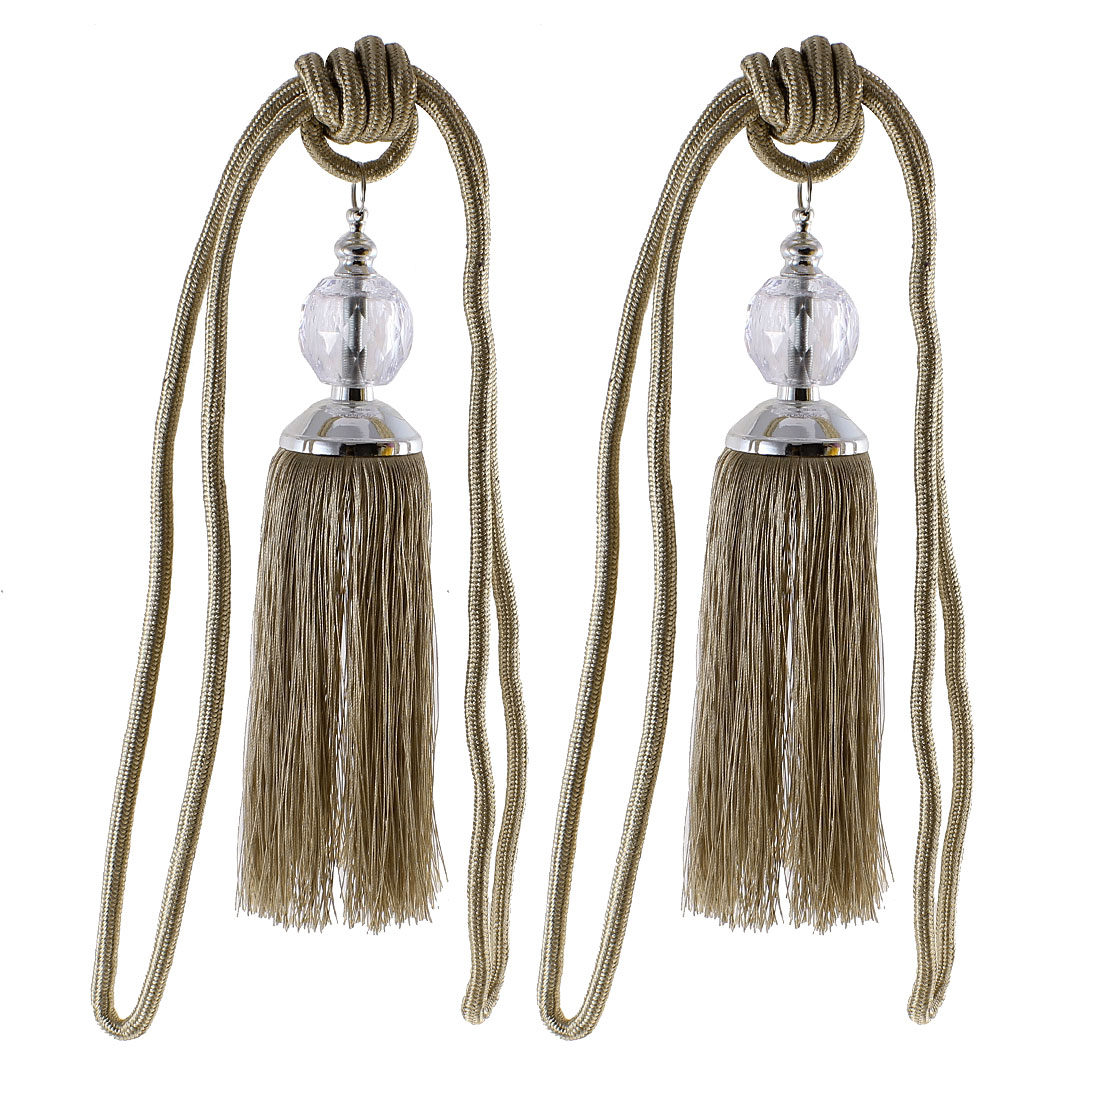 Pair Double Tassels Curtain Tieback Drapery Rope Drape Light Brown